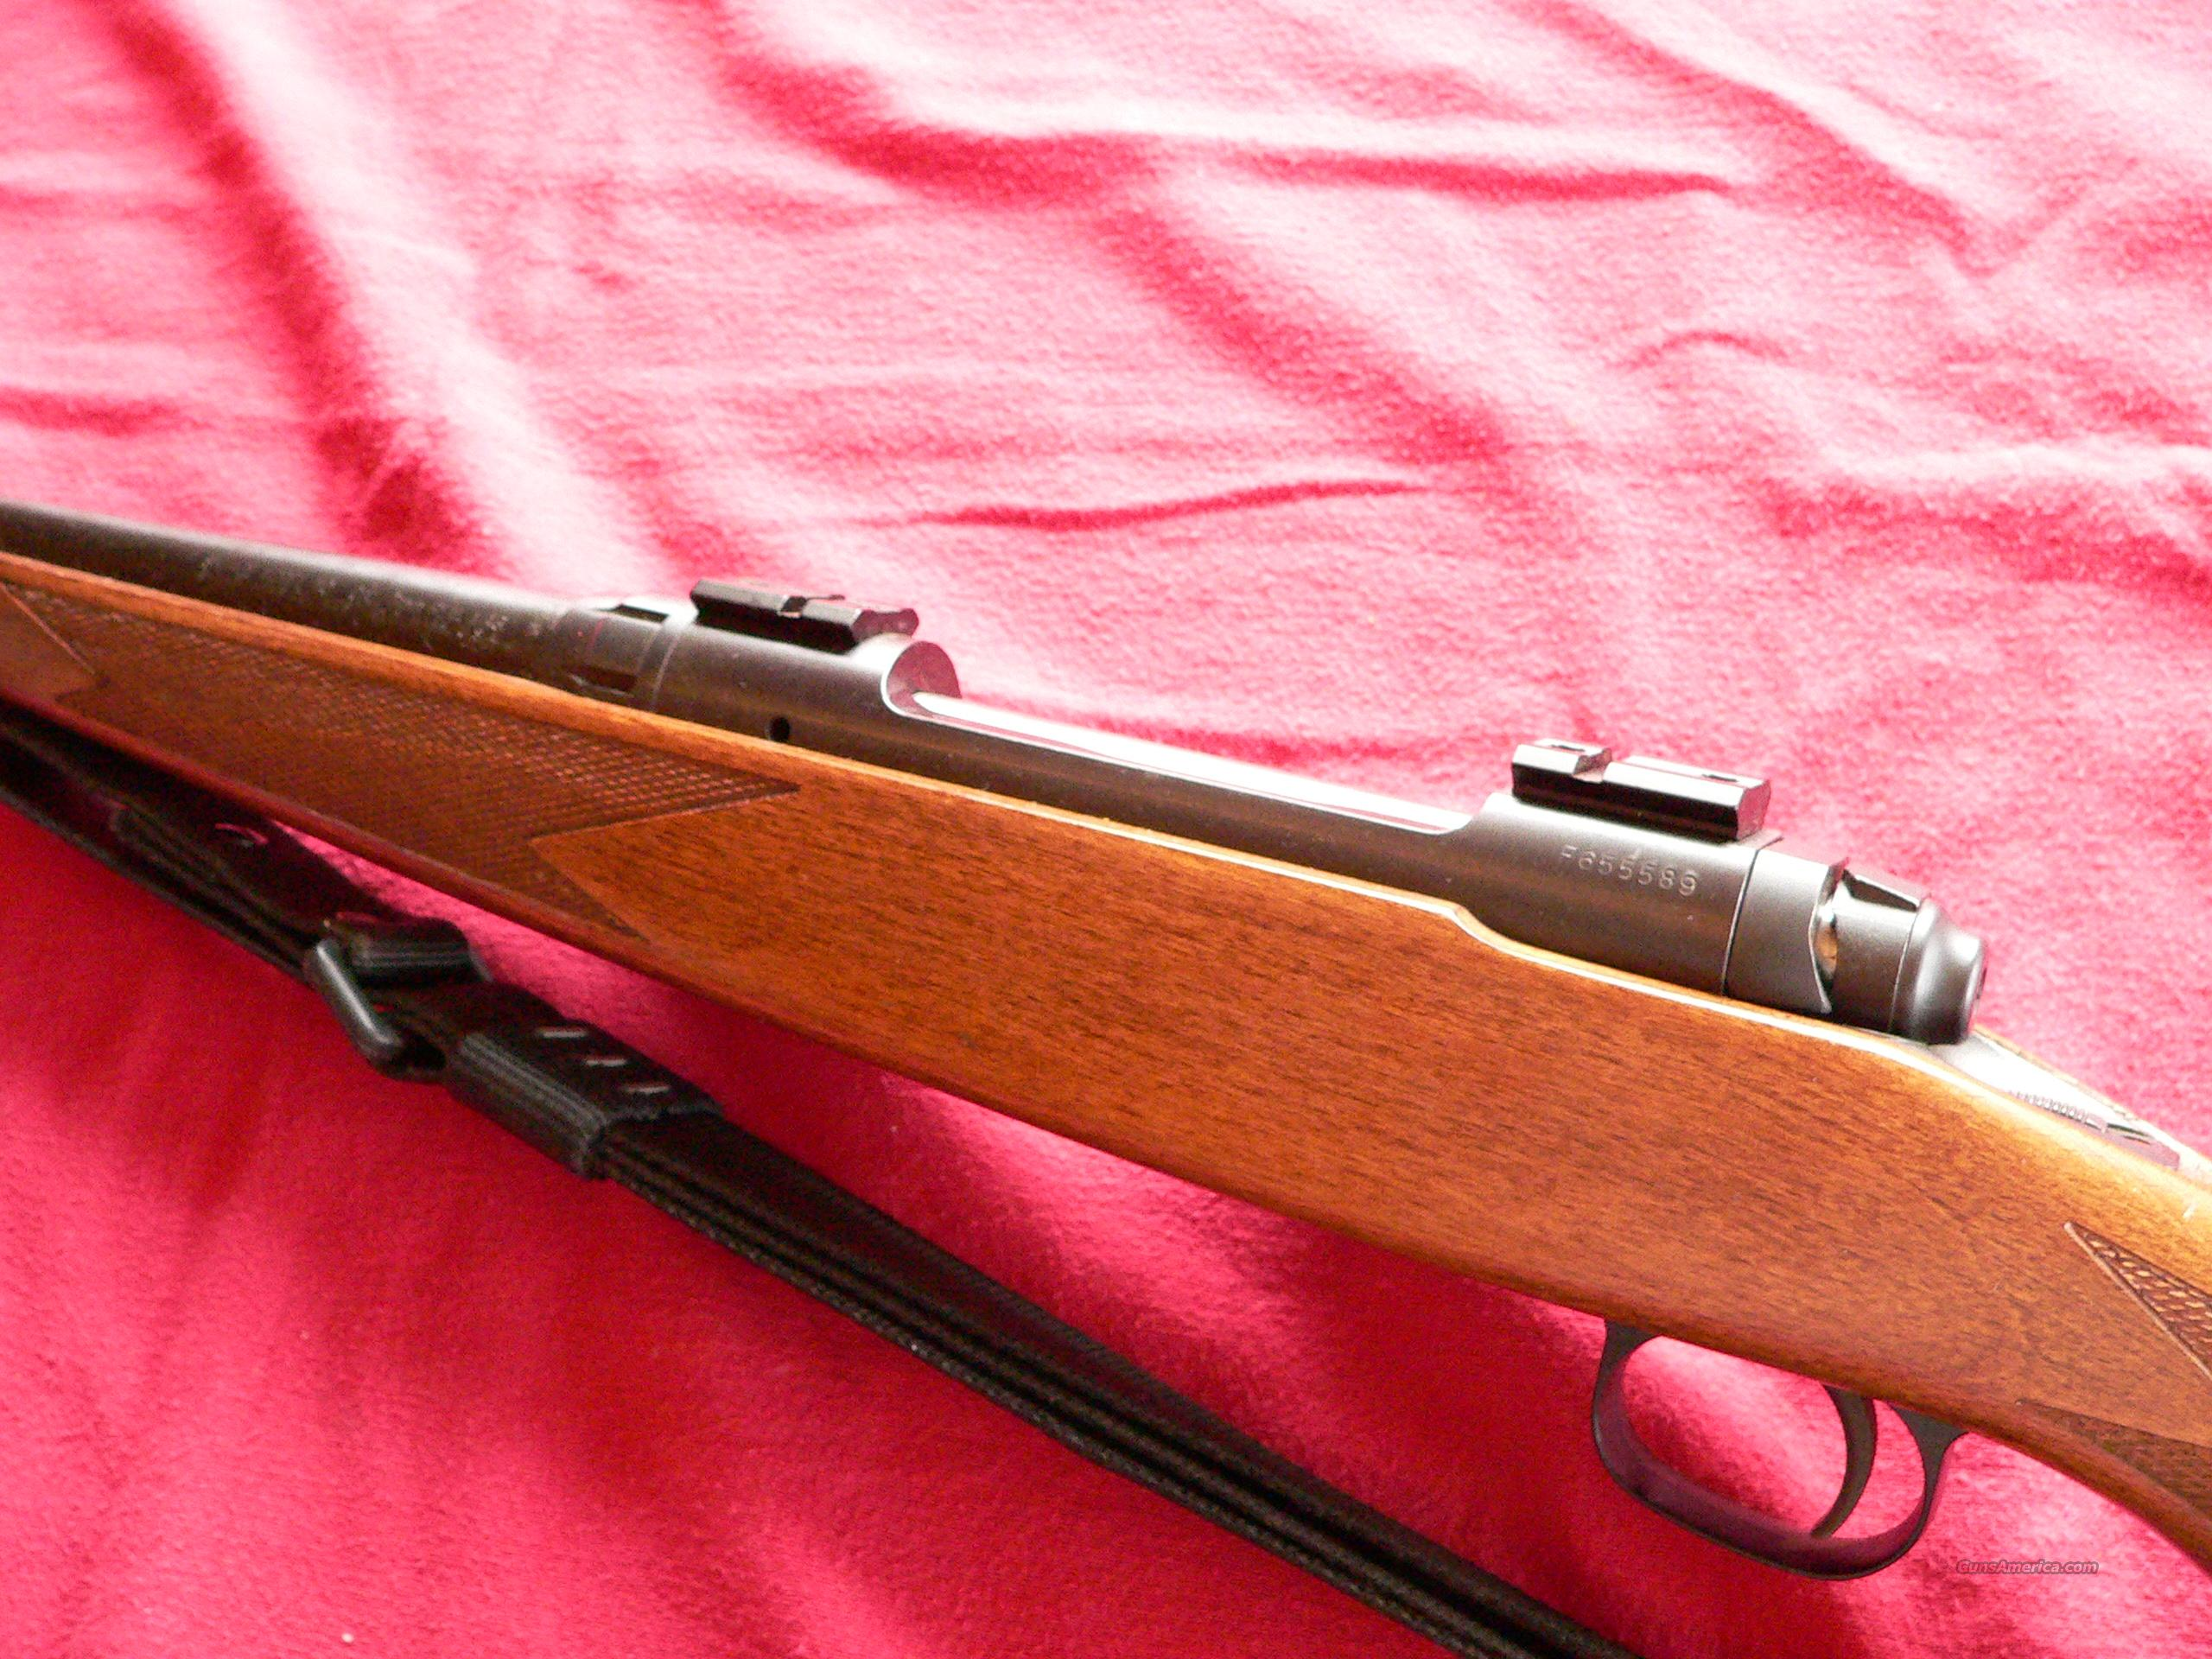 Savage Model 110 cal. 7mm Remington Mag. Bolt-action Rifle   Guns > Rifles > Savage Rifles > Standard Bolt Action > Sporting